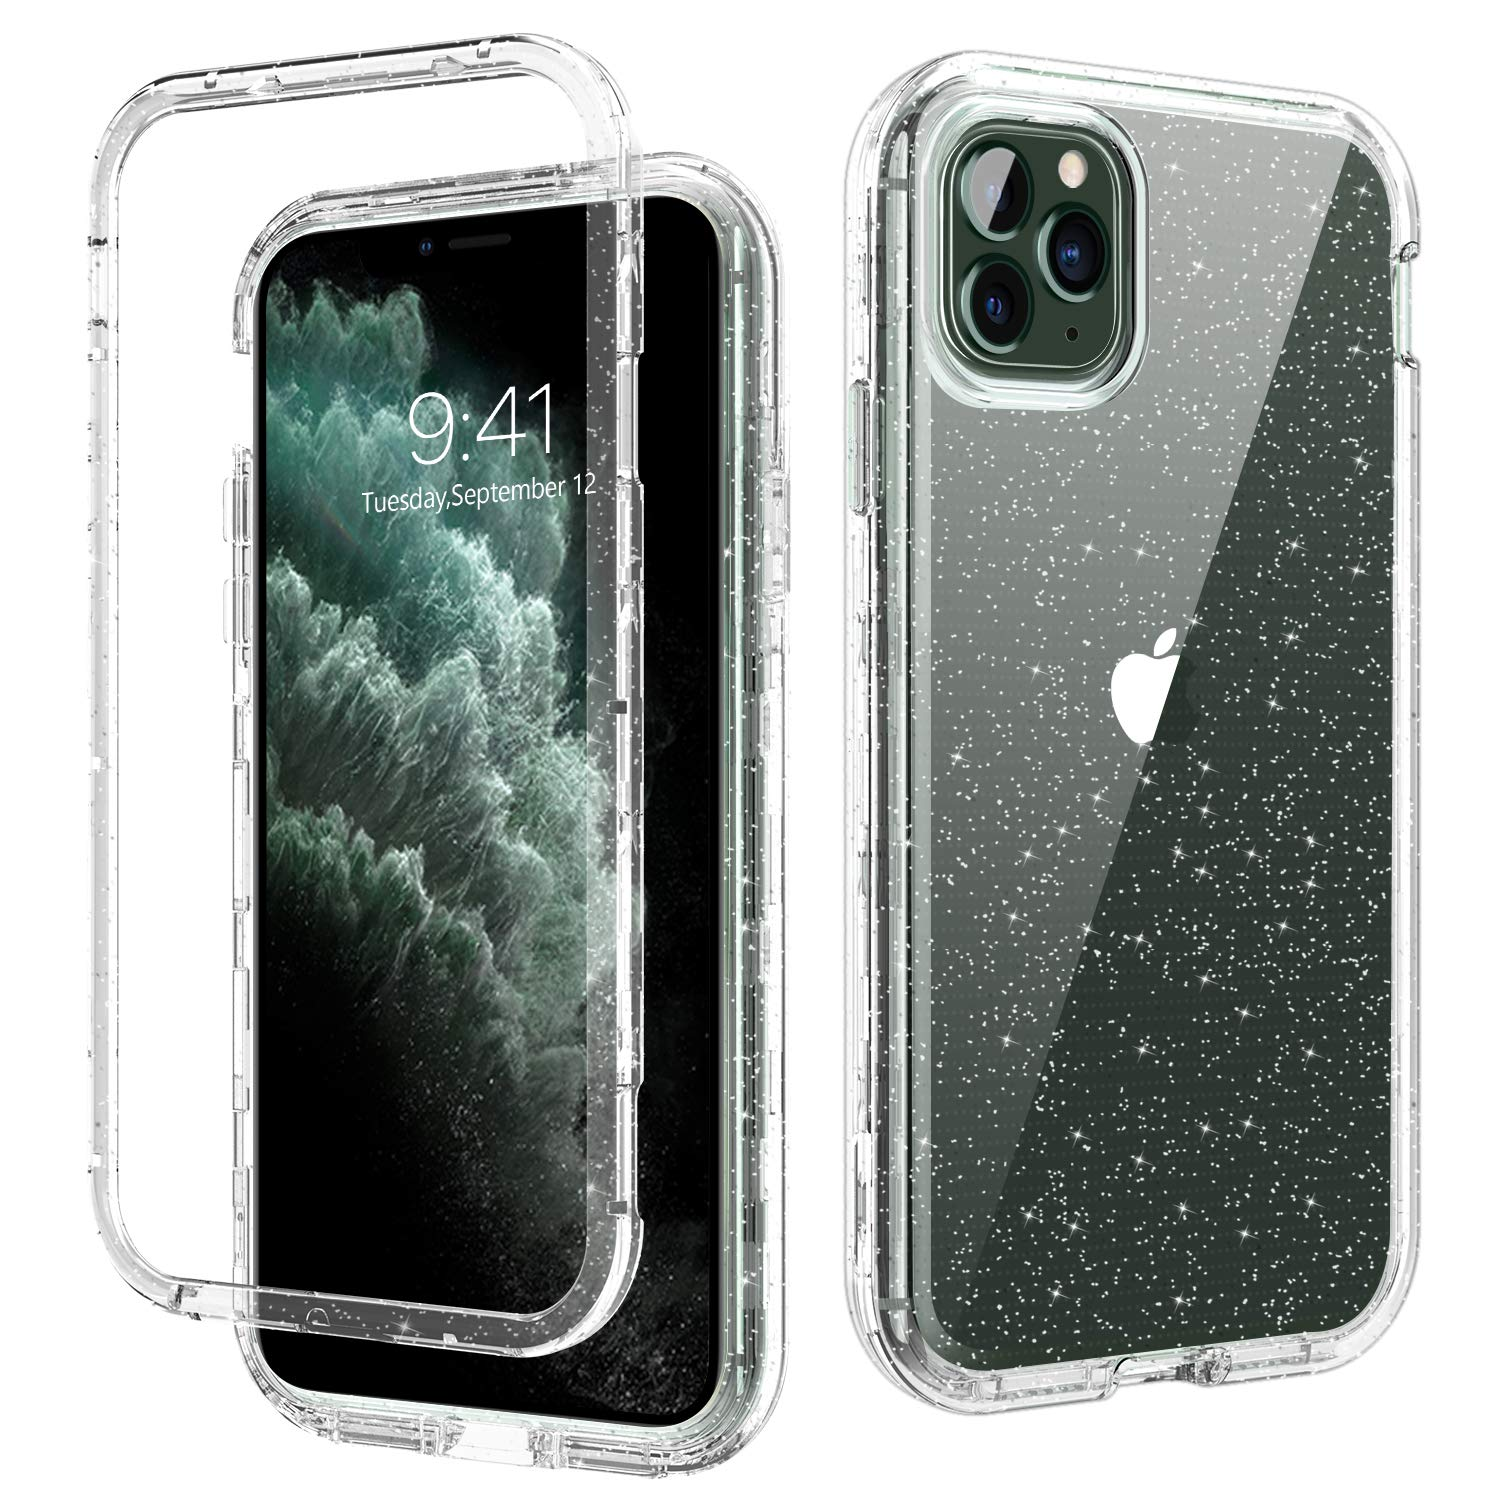 iPhone 11 Pro Max Case Glitter DOMAVER iPhone 11 Pro Max Phone Cases Three Layer Heavy Duty Hybrid Hard PC Flexible TPU Bumper Protective Shockproof Cover Case for iPhone 11 Pro Max 6.5 Inch (2019)